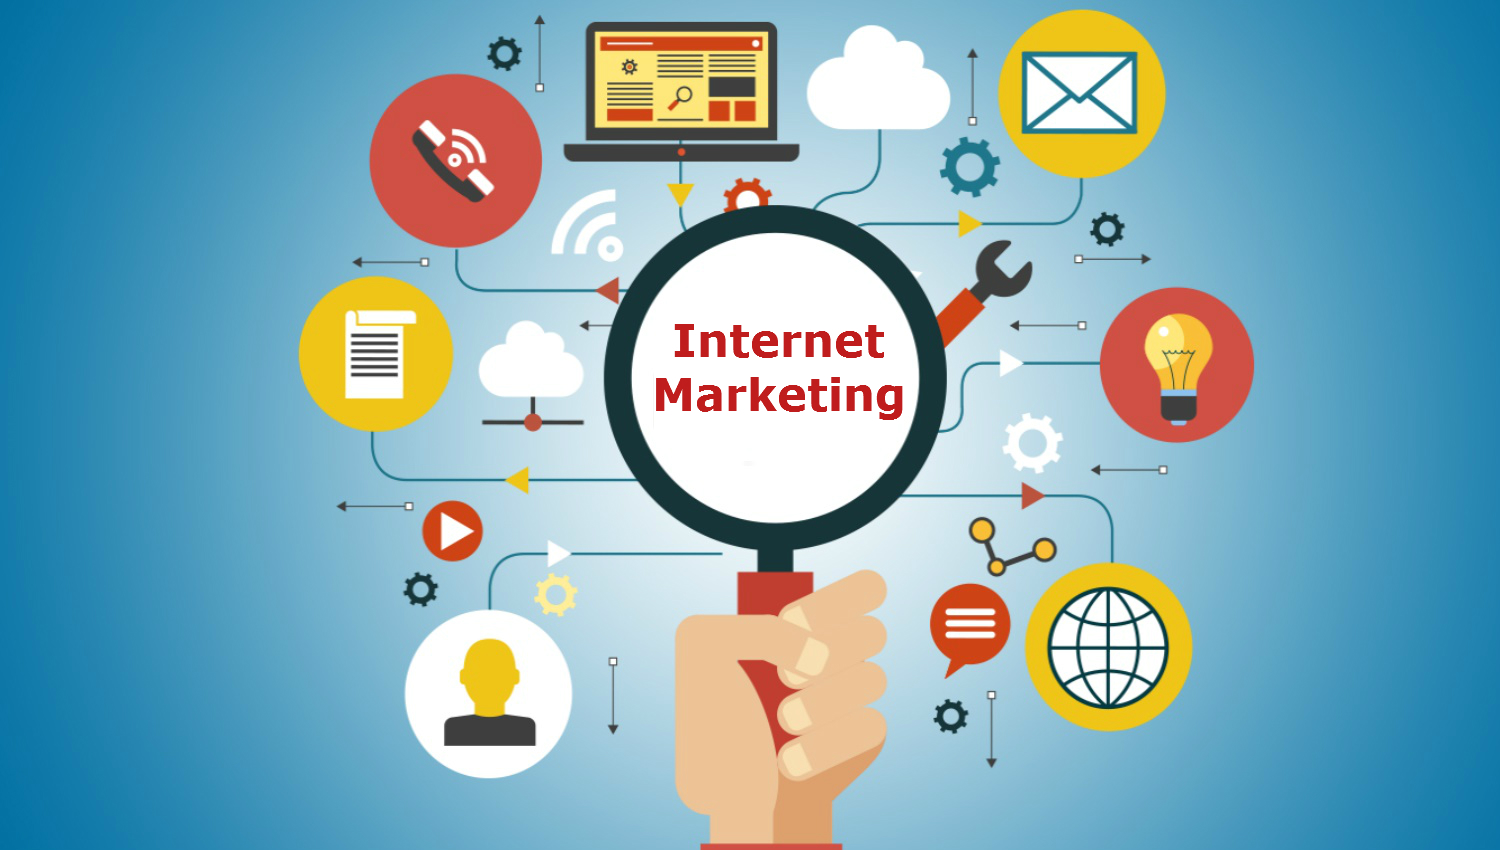 What Makes a Great Internet Marketing Company?